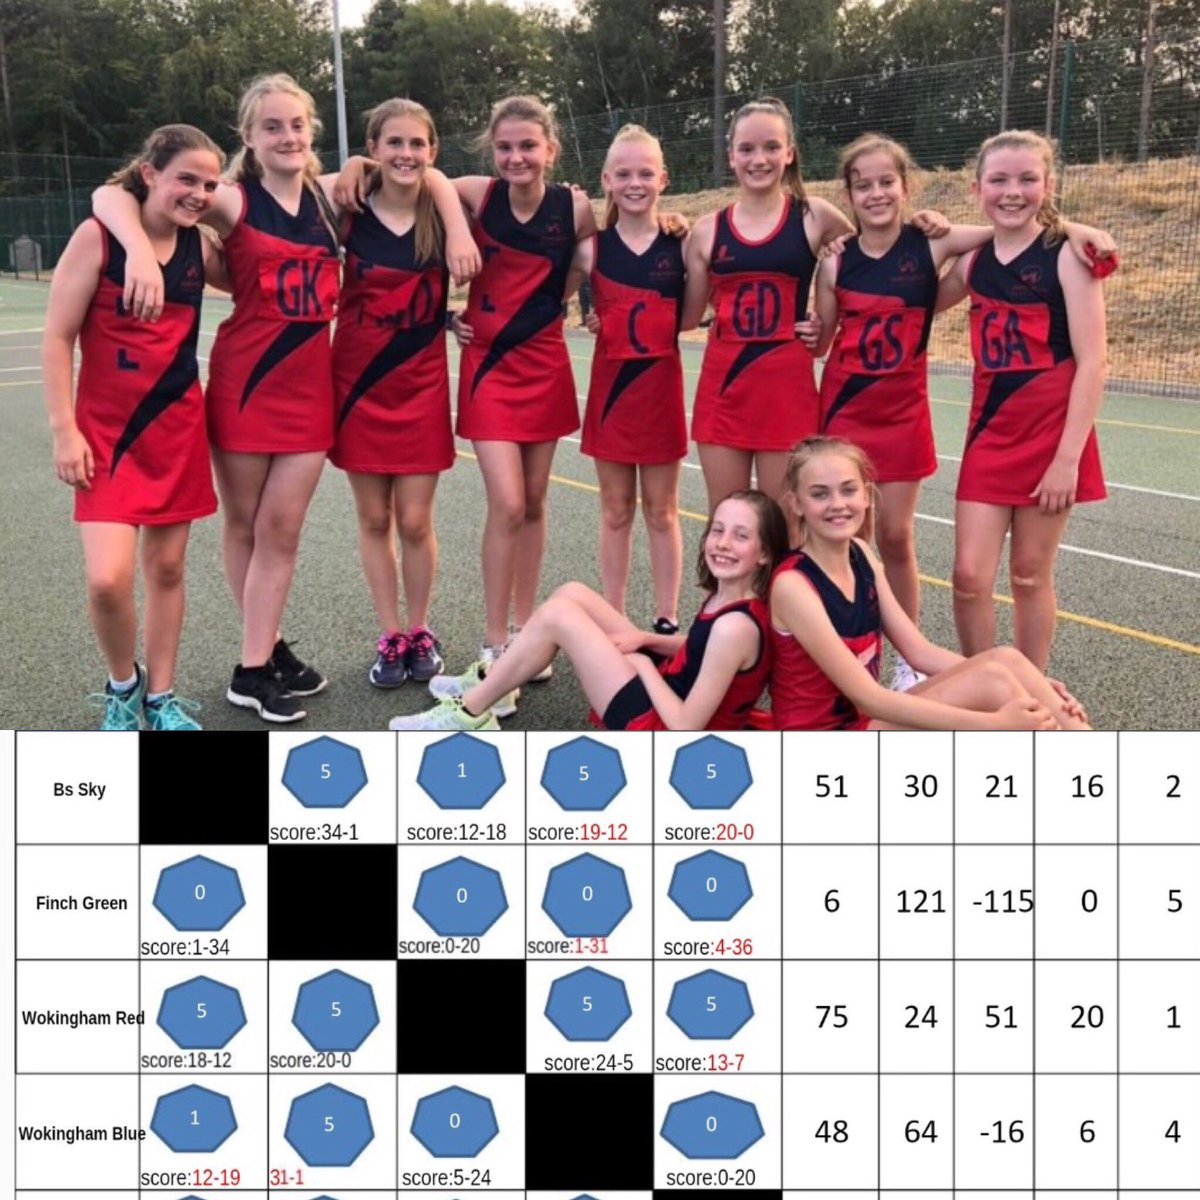 Congratulations to both @WokinghamNet U12 teams who had a brilliant summer league, and especially to the U12 Reds who were summer league winners!! 🏆#ProudClub #proudcoach #netball #netballfam And a special shout out to their coach @sophierowse97 🏐❤️💙